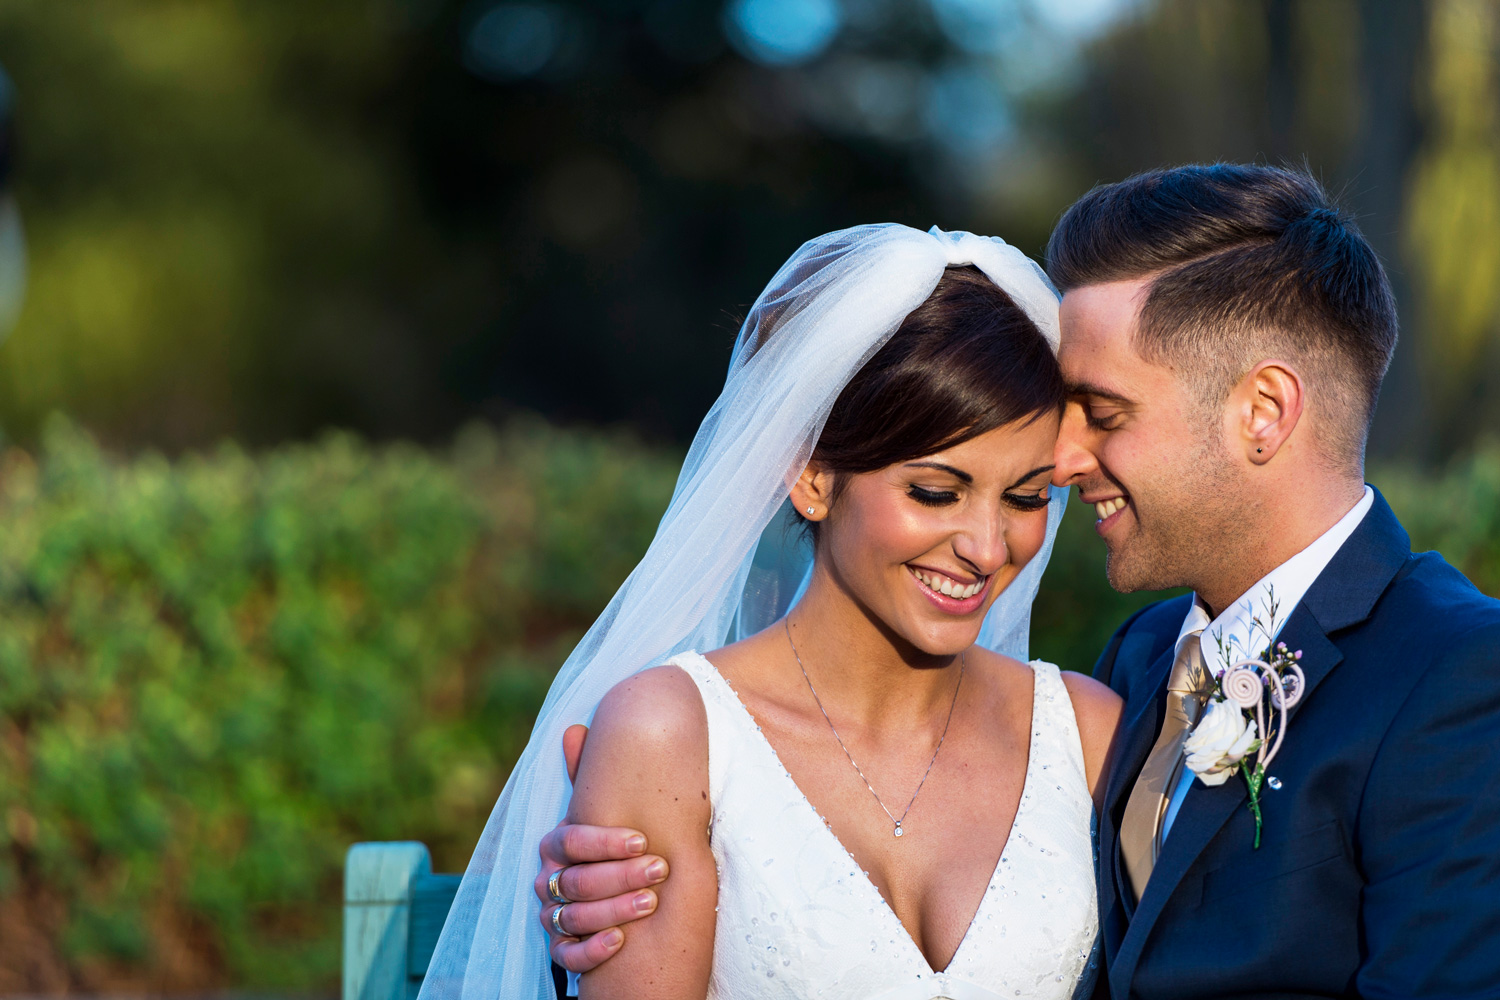 The Welcombe Hotel Stratford-upon-Avon wedding photography.